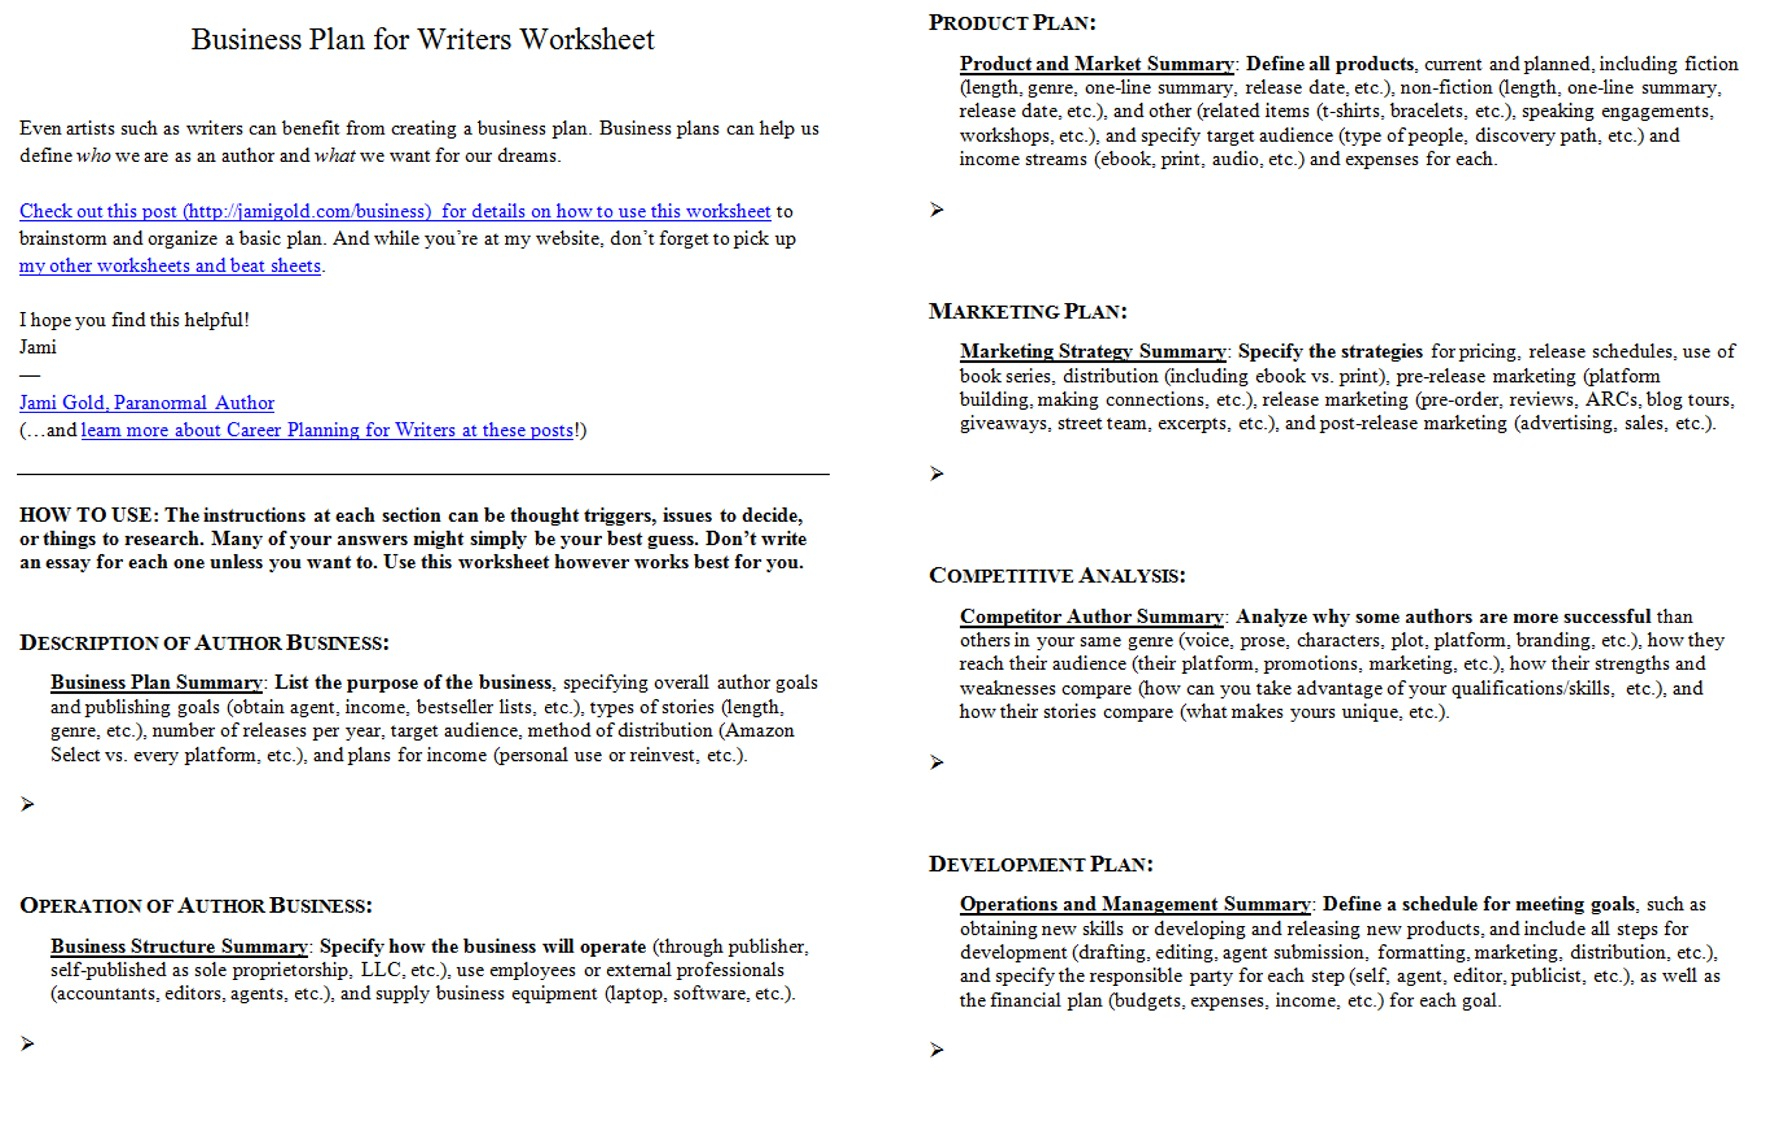 Aldiablosus  Inspiring Worksheets For Writers  Jami Gold Paranormal Author With Remarkable Screen Shot Of Both Pages Of The Business Plan For Writers Worksheet With Divine Bohr Atomic Model Worksheet Also Writing Formulas Worksheet In Addition Volume Worksheets Grade  And Vocabulary Worksheets Middle School As Well As Rates And Unit Rates Worksheet Additionally Exponential Worksheet From Jamigoldcom With Aldiablosus  Remarkable Worksheets For Writers  Jami Gold Paranormal Author With Divine Screen Shot Of Both Pages Of The Business Plan For Writers Worksheet And Inspiring Bohr Atomic Model Worksheet Also Writing Formulas Worksheet In Addition Volume Worksheets Grade  From Jamigoldcom